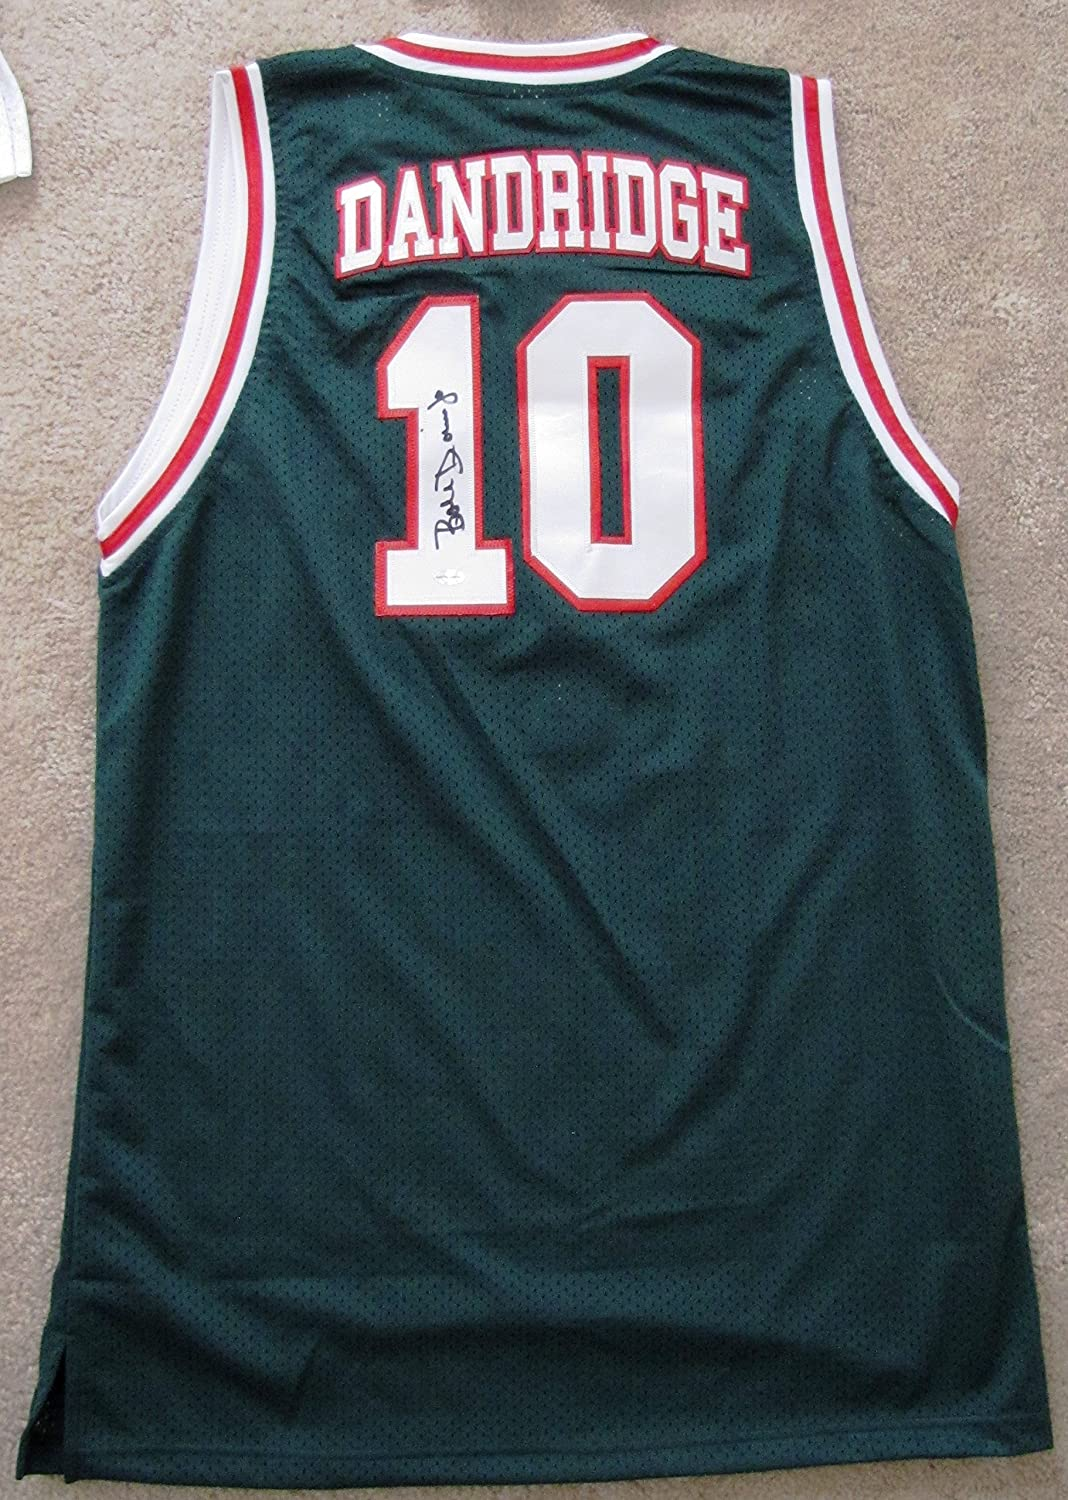 new Bob Dandridge Autographed Jersey Milwaukee Bucks NBA Champ